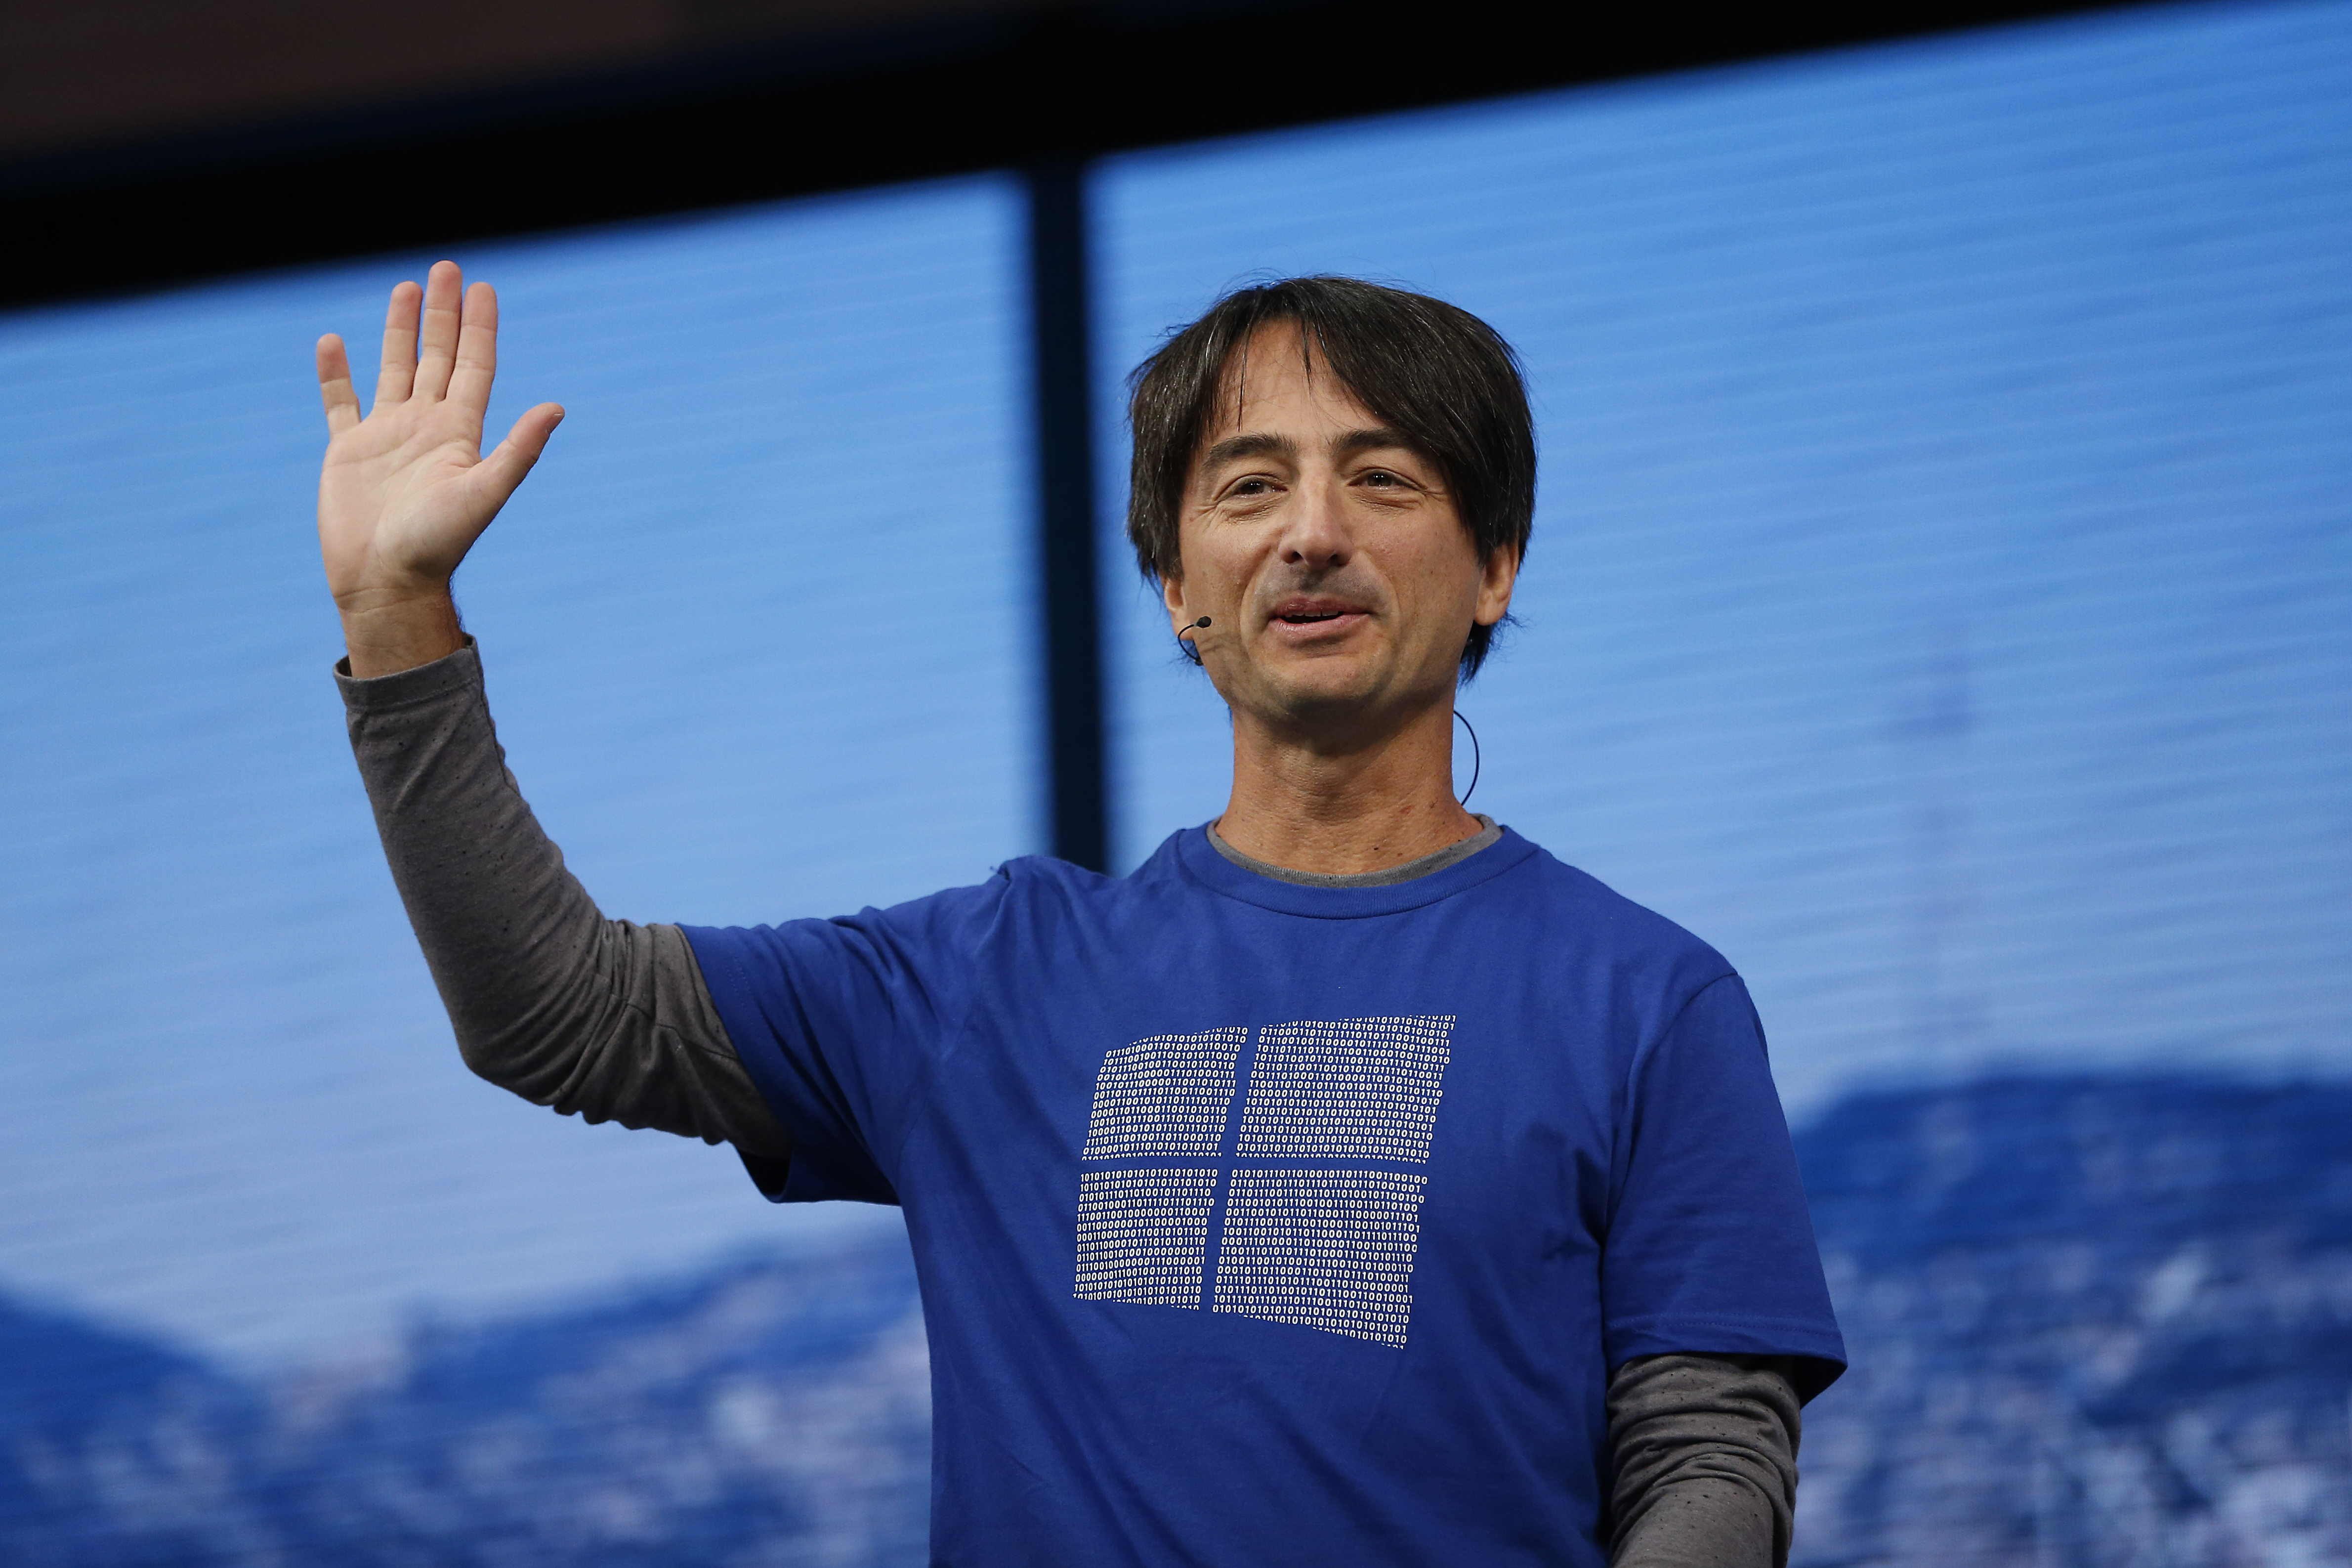 Joe Belfiore, corporate vice president, operating systems group at Microsoft, speaks on stage during the 2015 Microsoft Build Conference on April 29, 2015 at Moscone Center in San Francisco, California.